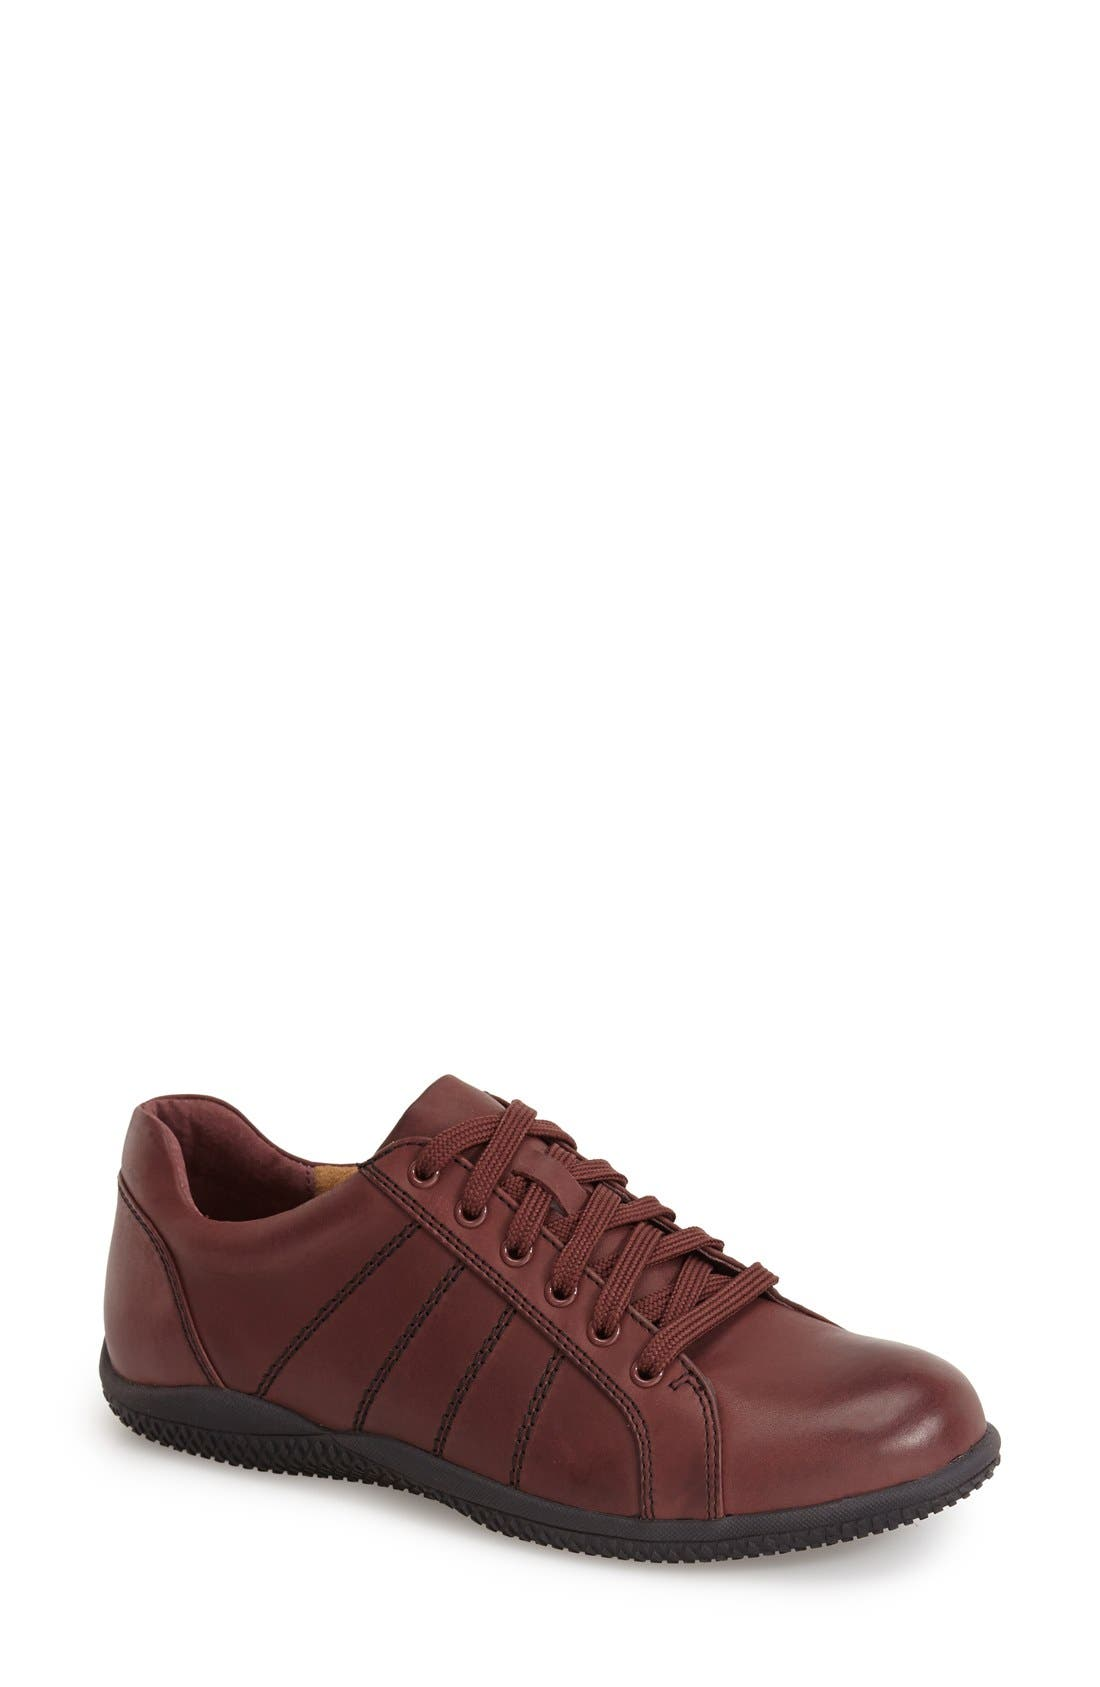 'Hickory' Sneaker,                         Main,                         color, Dark Red